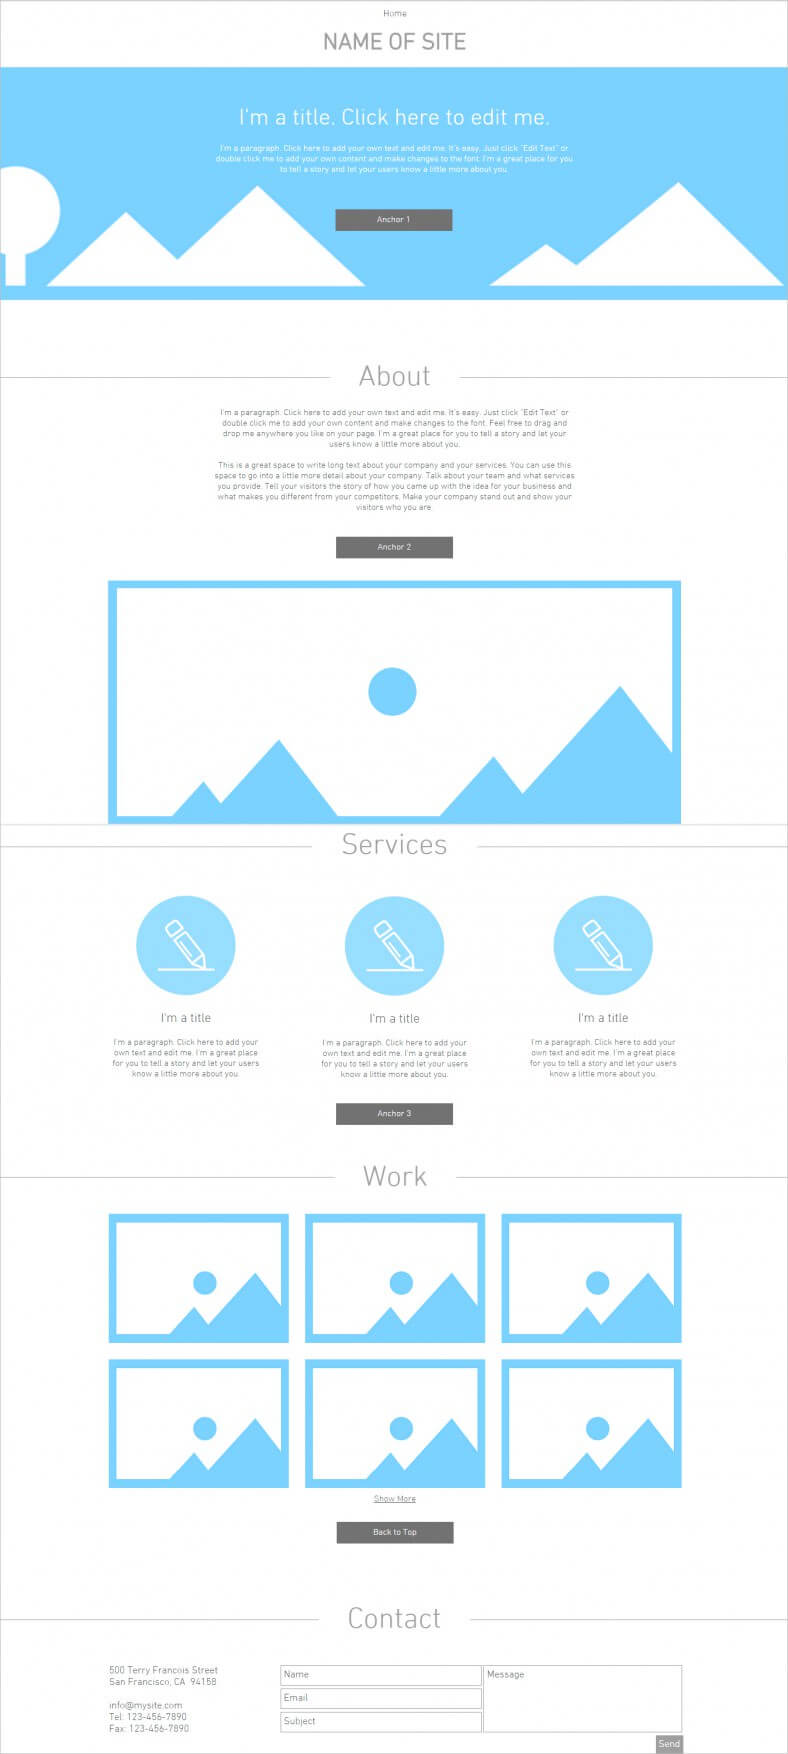 Blank Html5 Website Templates & Themes   Free & Premium With Regard To Html5 Blank Page Template